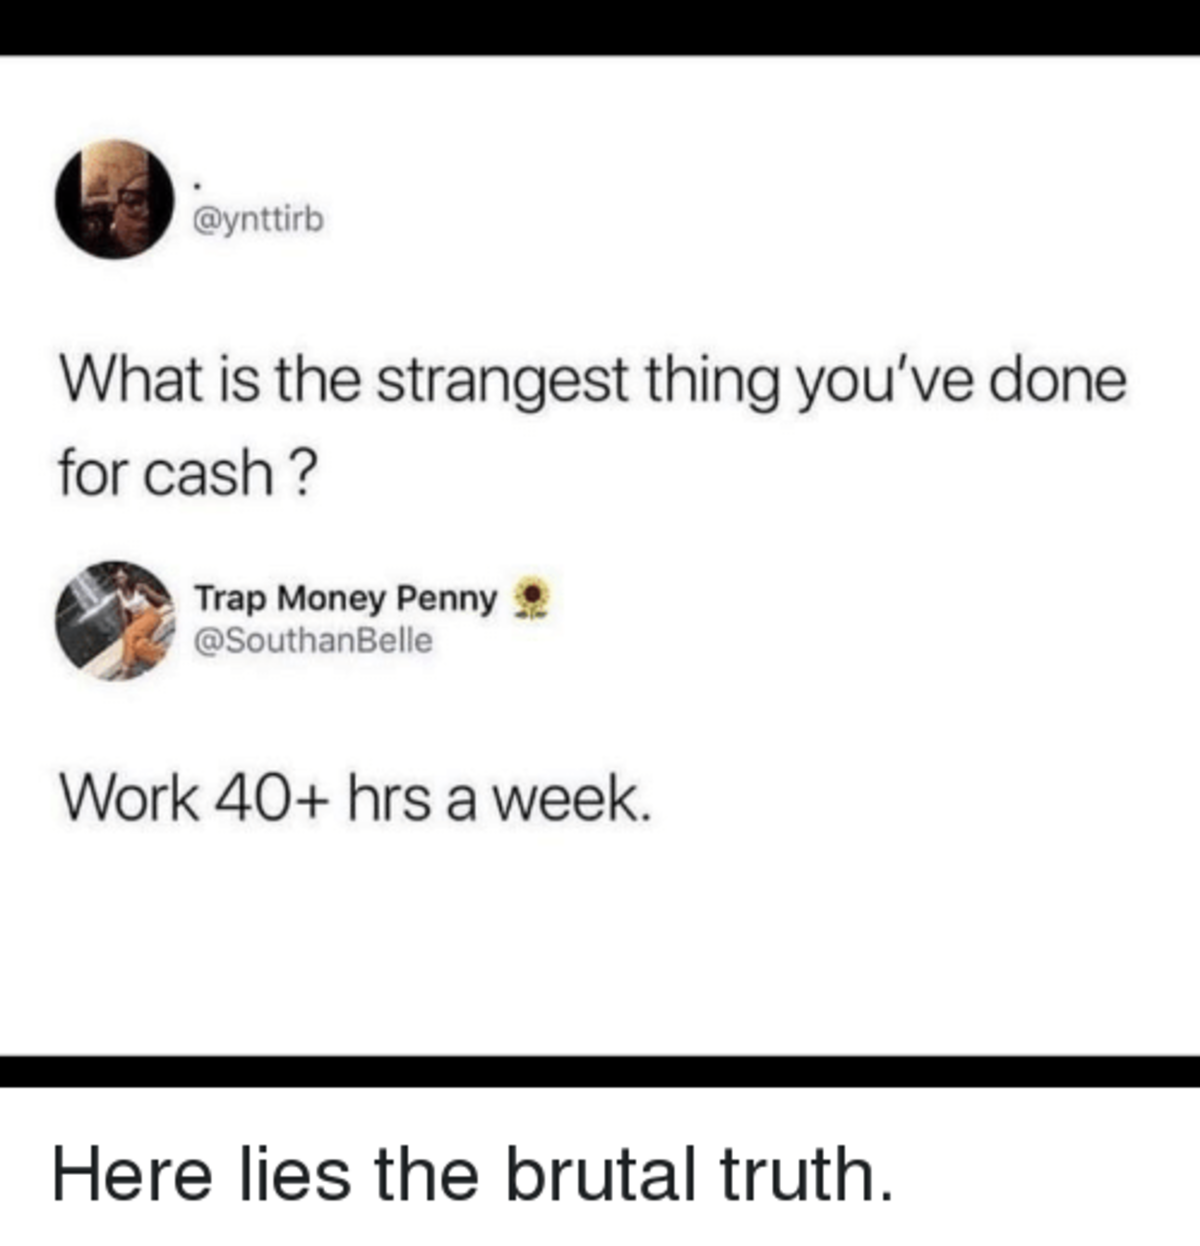 Too true. .. I bet you work at a cubicle, with a comfy office chair, with a coffee maker by your side, and get paid bi-weekly, you faggot